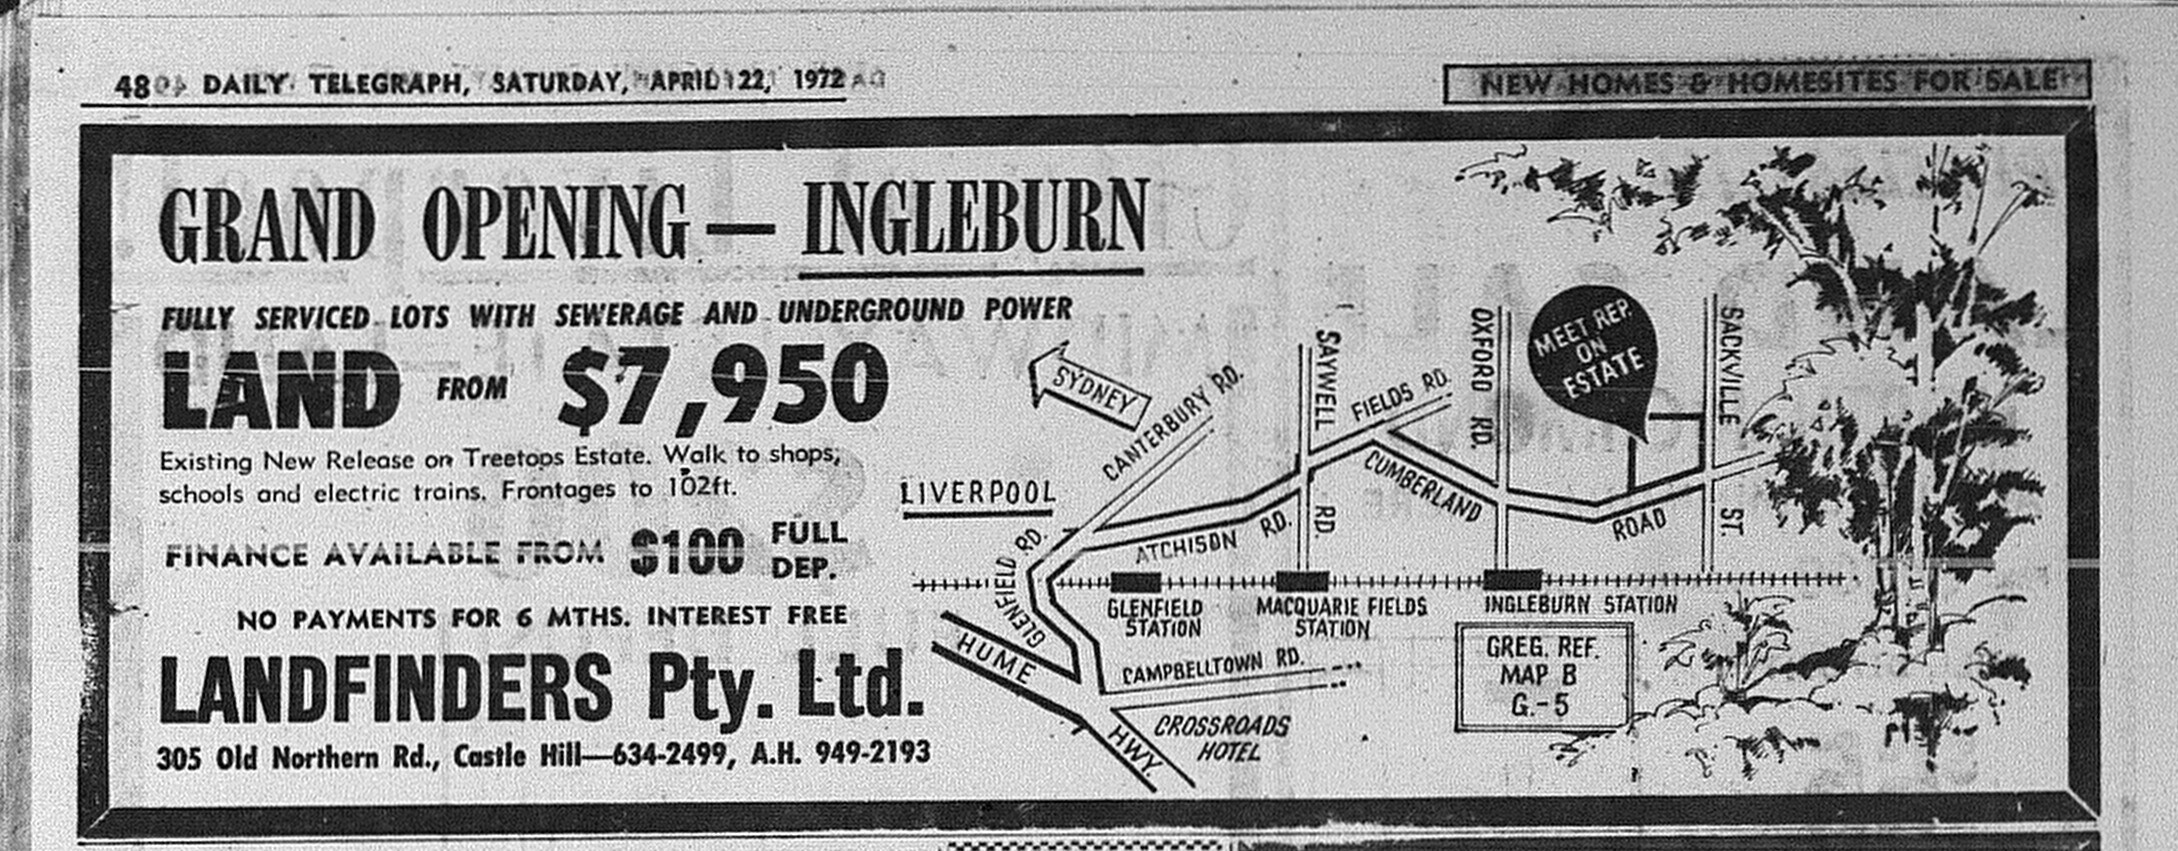 Ingleburn ad April 22 1972 daily telegraph 48